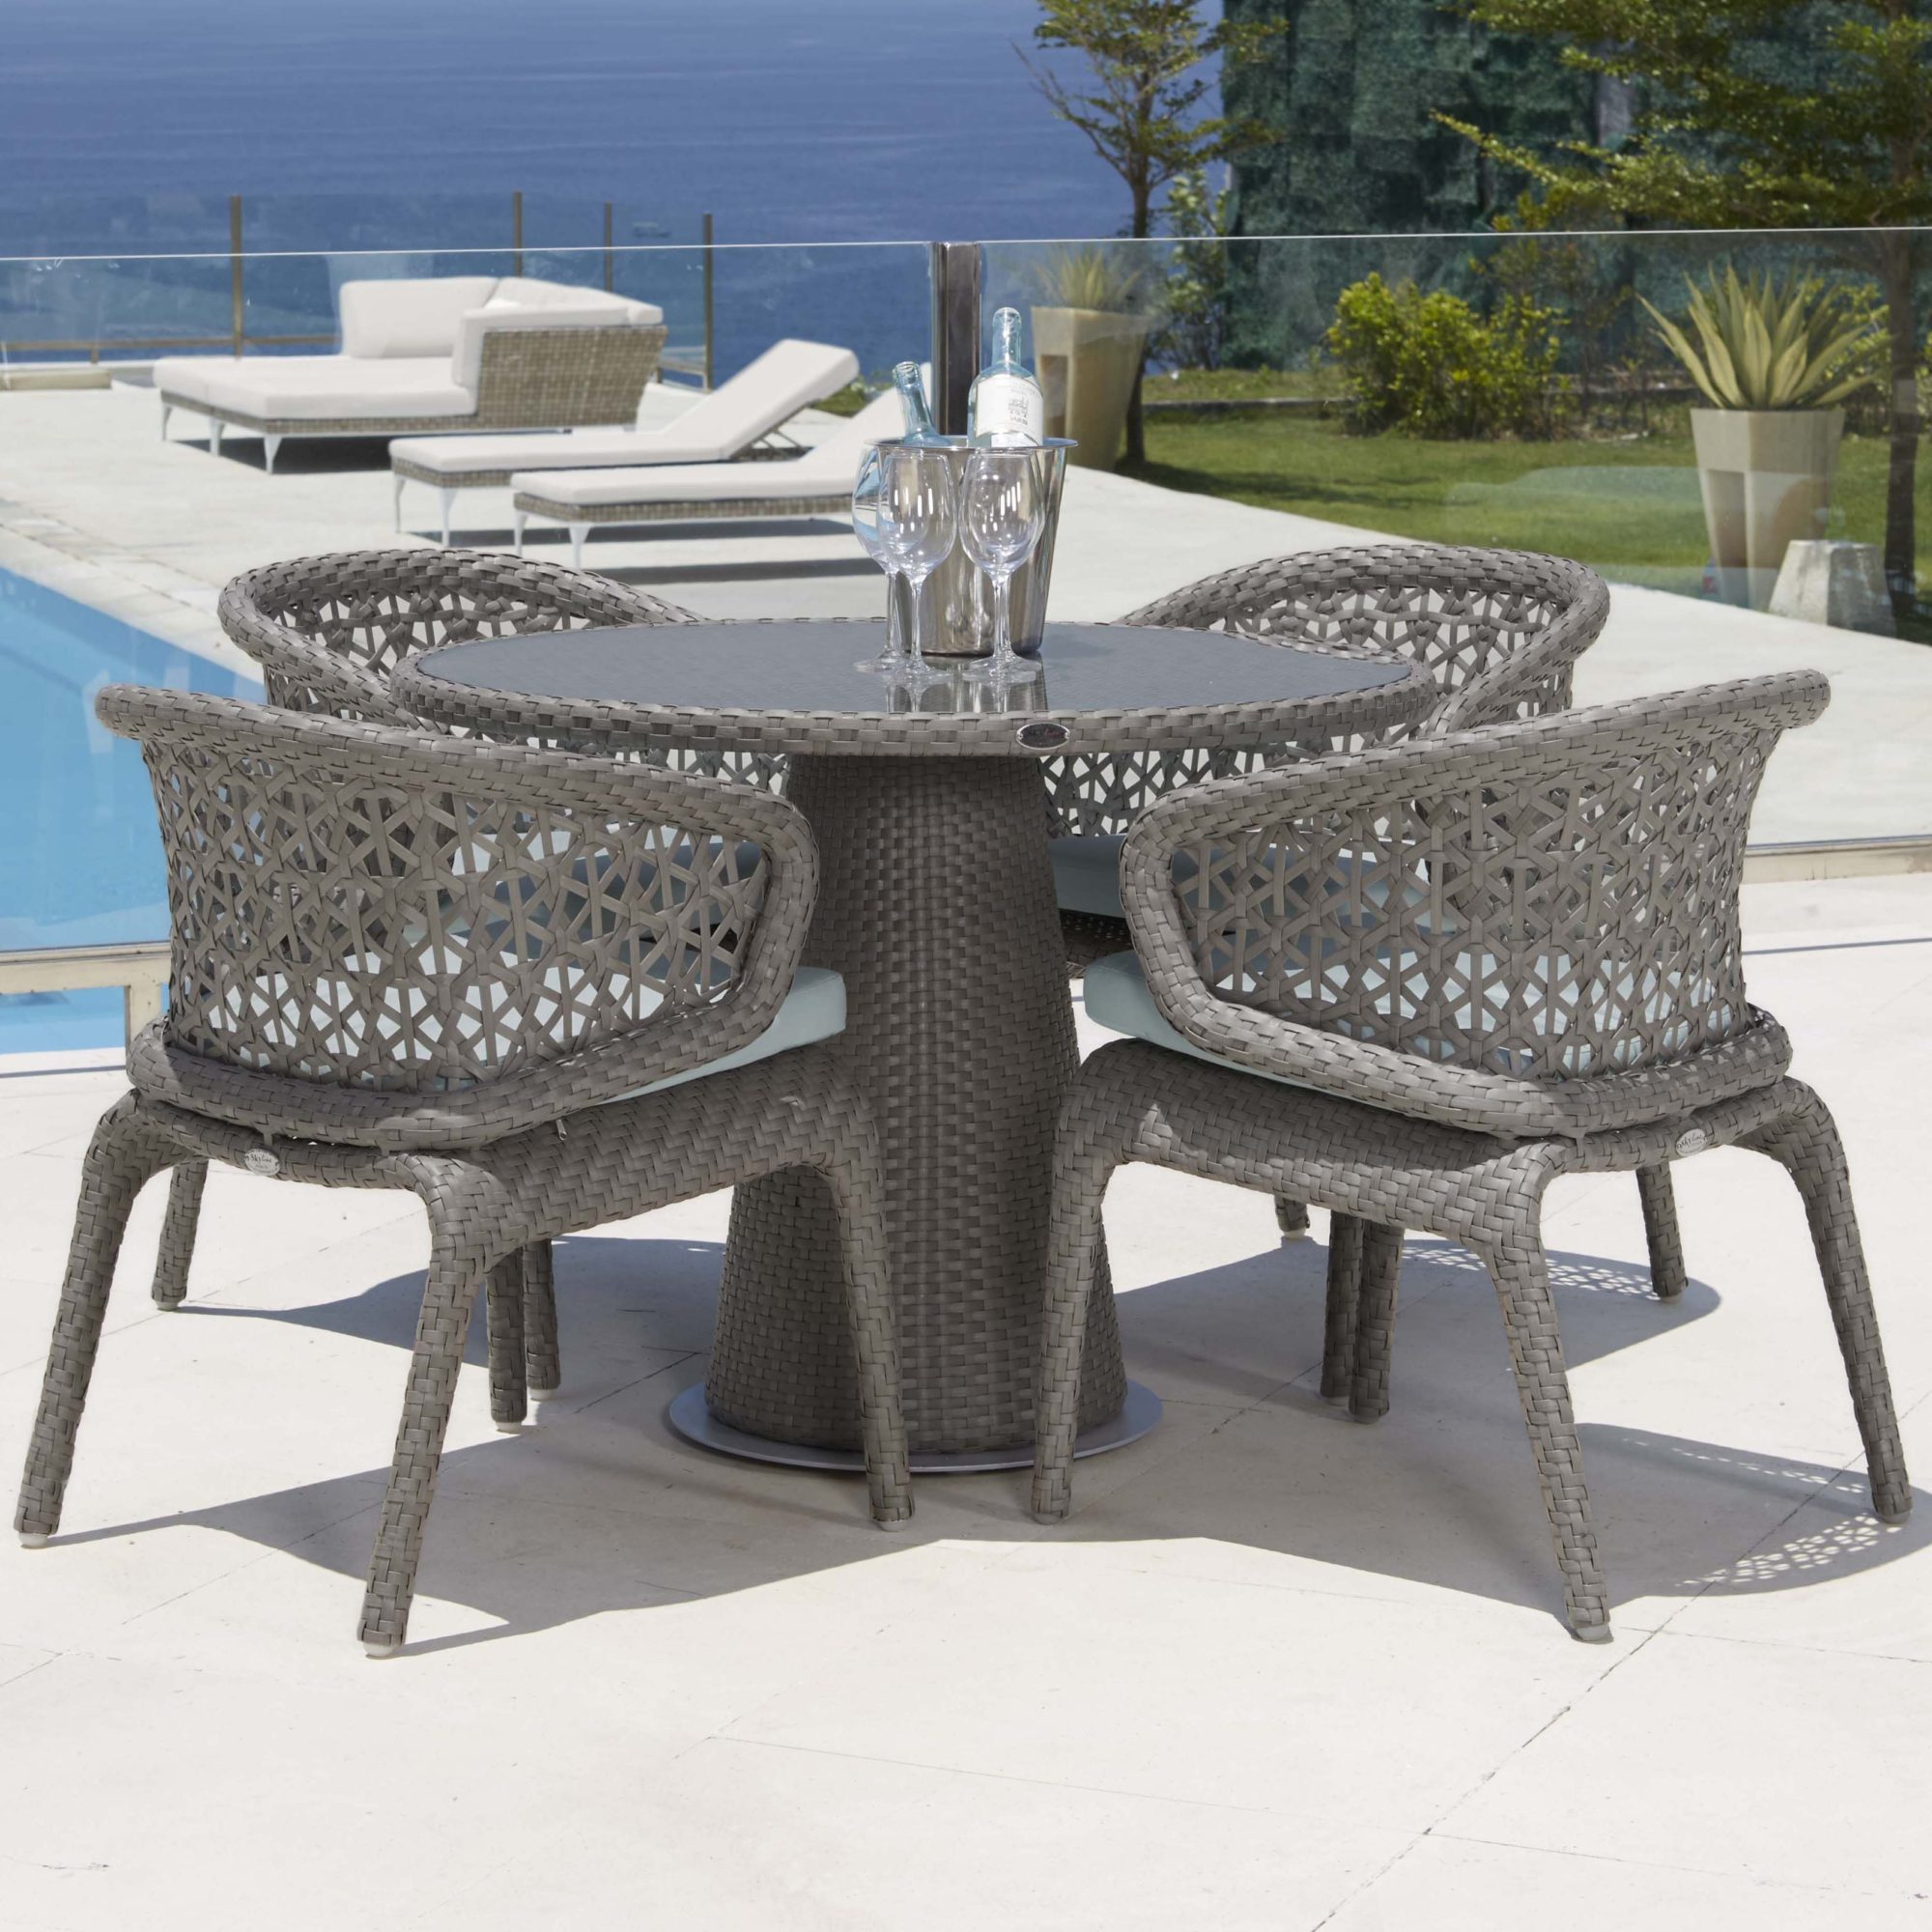 Commercial Dining Chairs Hd Wallpapers Commercial Dining Chairs Adelaide Wallpaper Dining Room